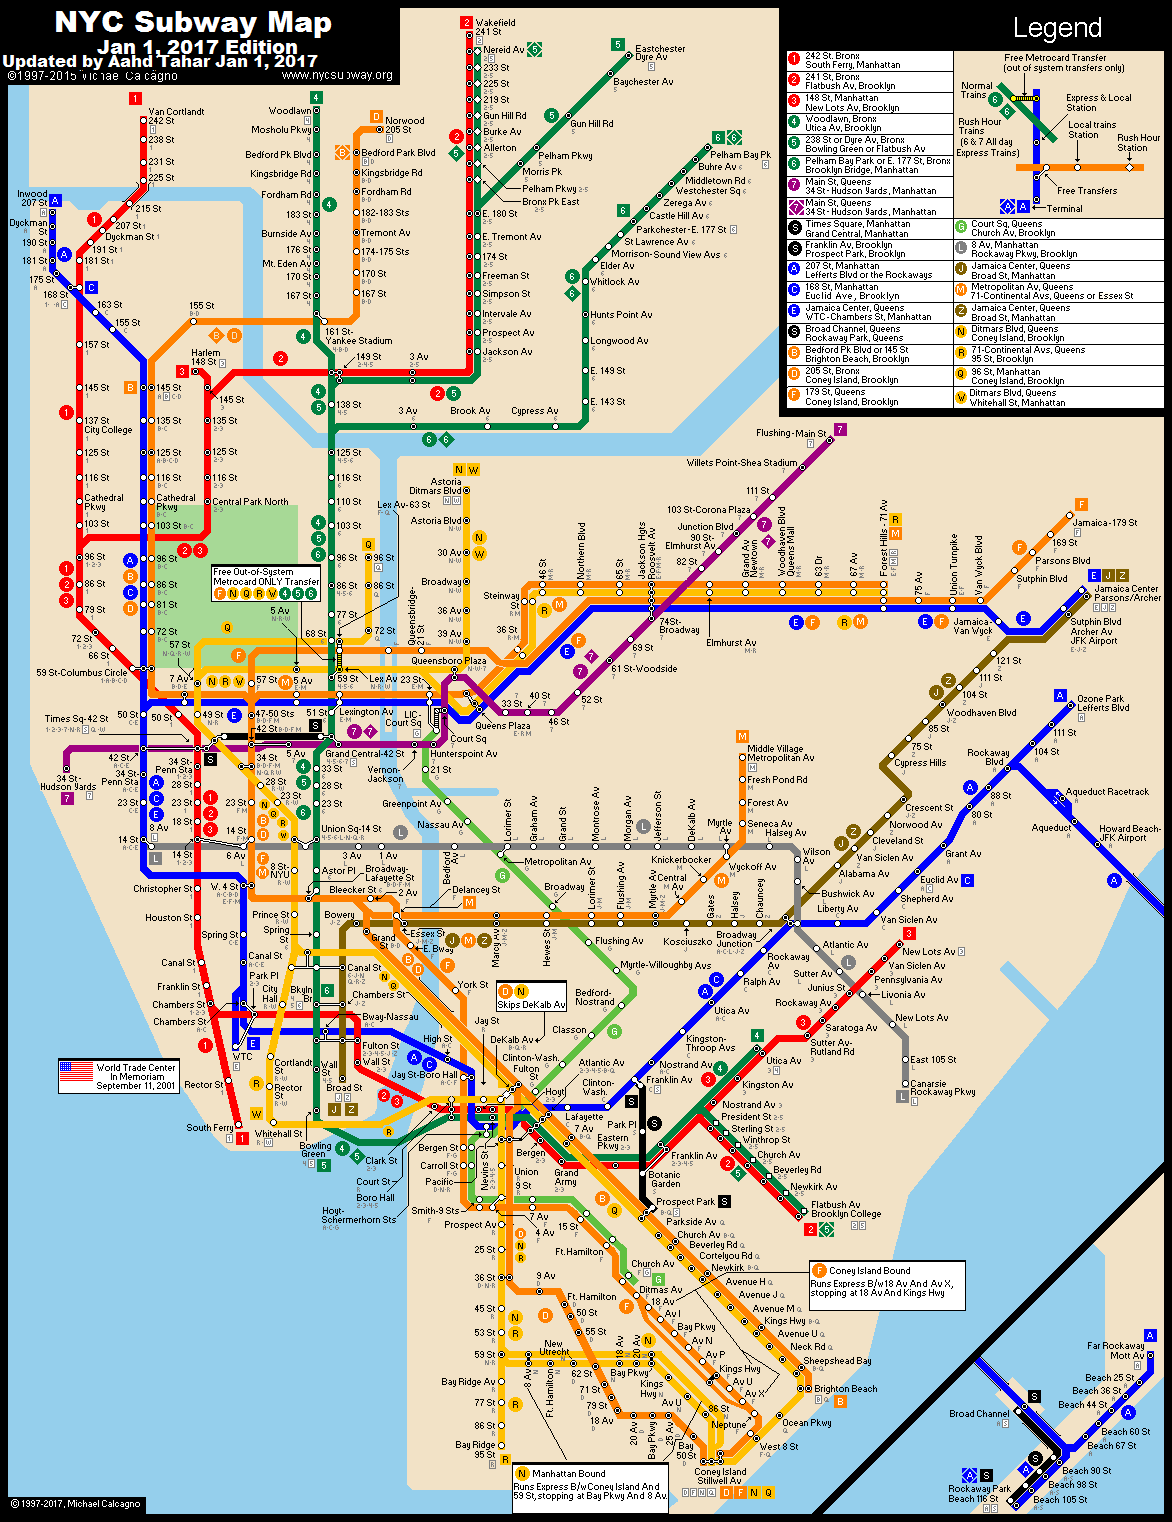 New York Metro Map .nycsubway.org: New York City Subway Route Map by Michael Calcagno New York Metro Map